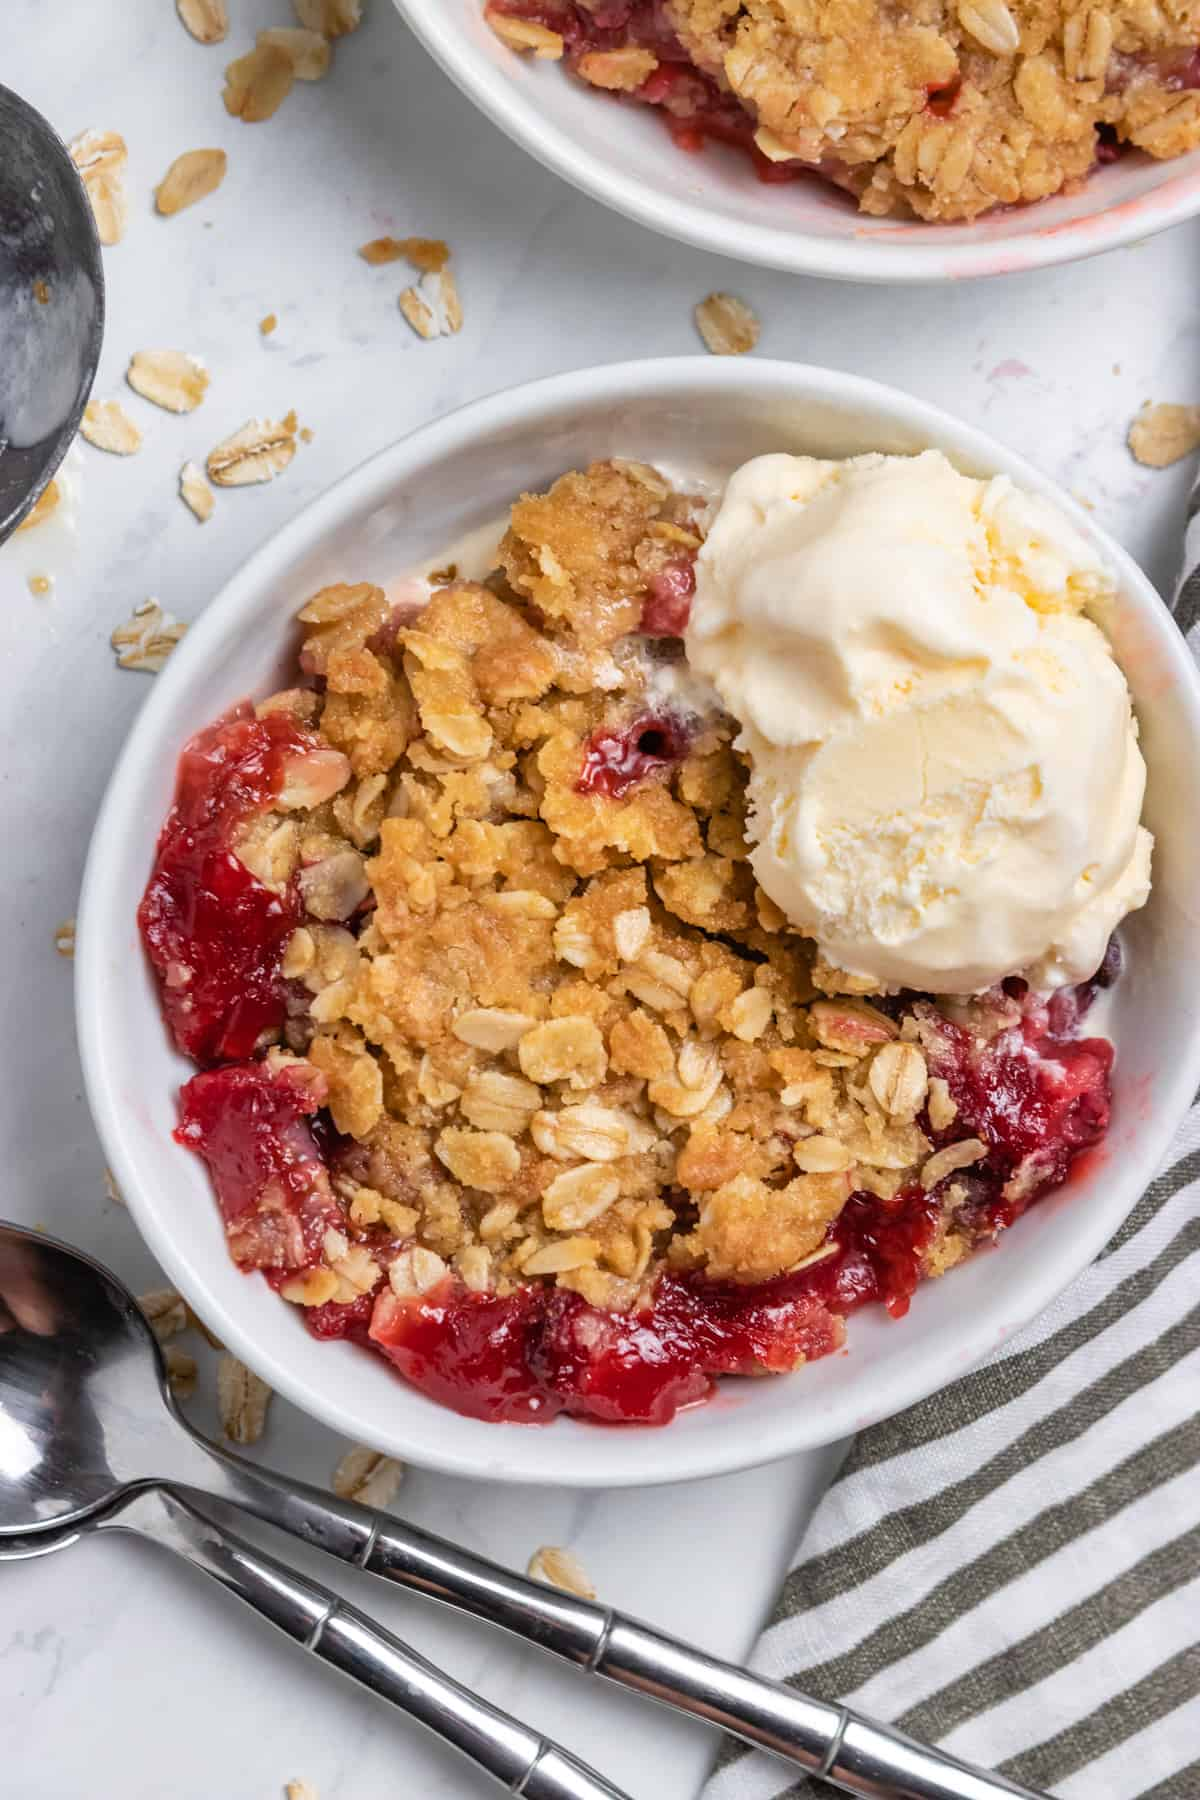 Overhead shot of strawberry crumble in white bowl with spoon and ice cream.